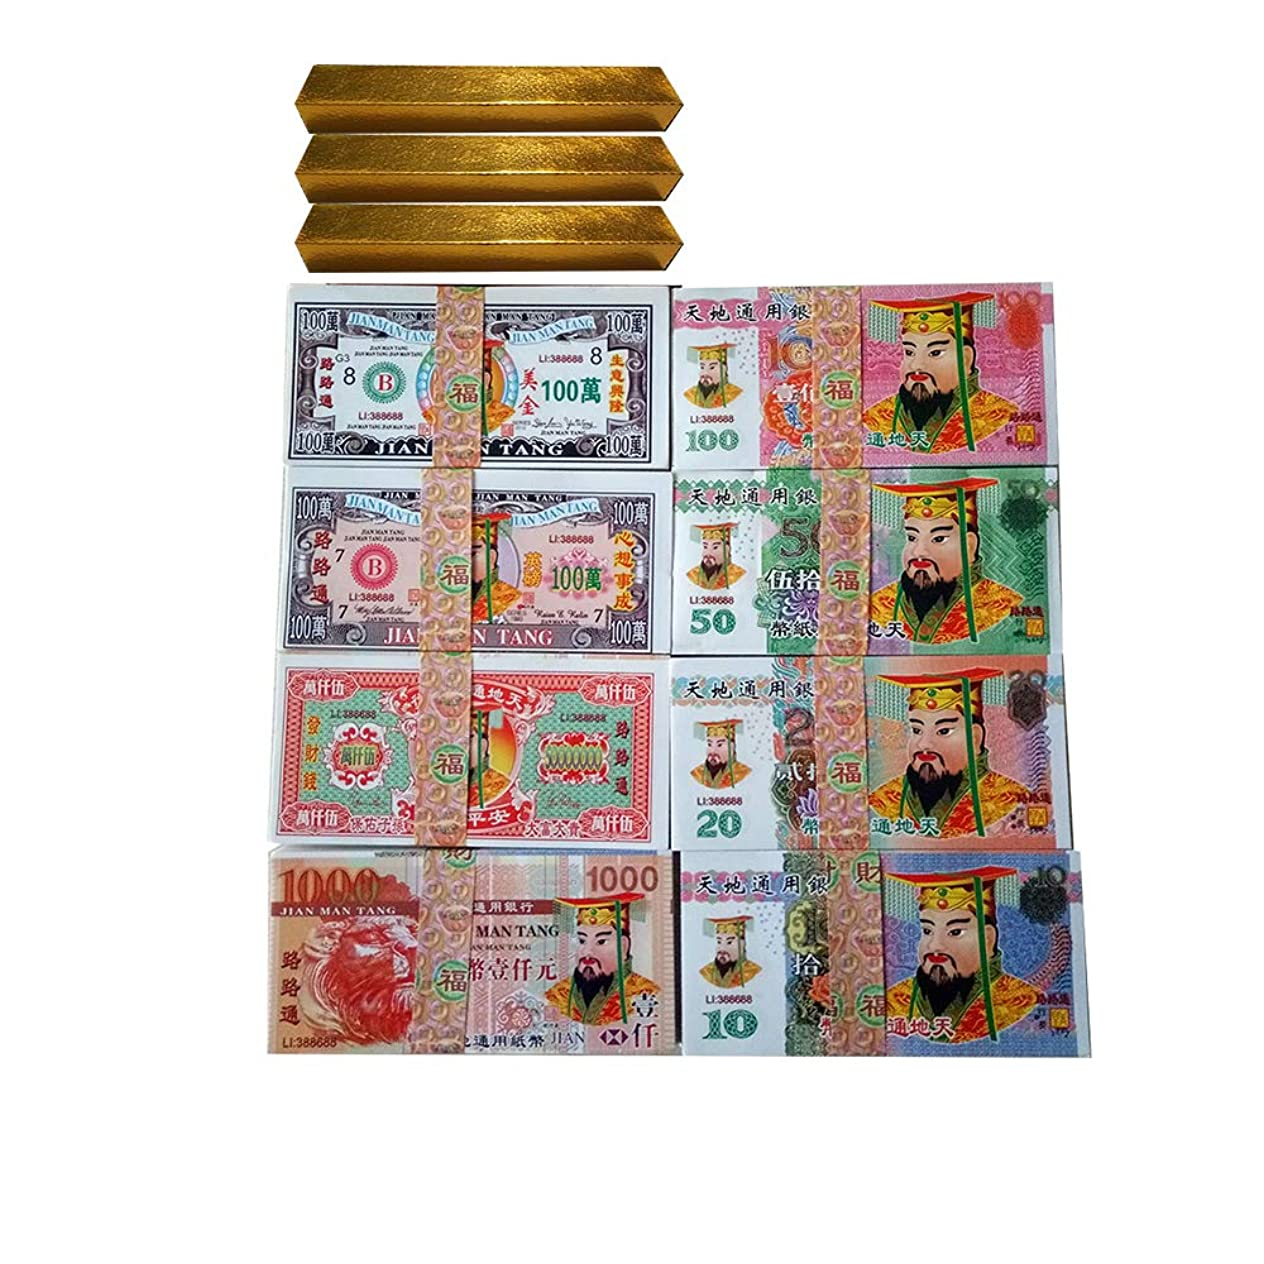 ZeeStar Chinese/Vietnamese Joss Paper Gold Bars - Ancestor Money Gold Bars Sets - The Qingming Festival and The Hungry Ghost Festival lnvgjocq820